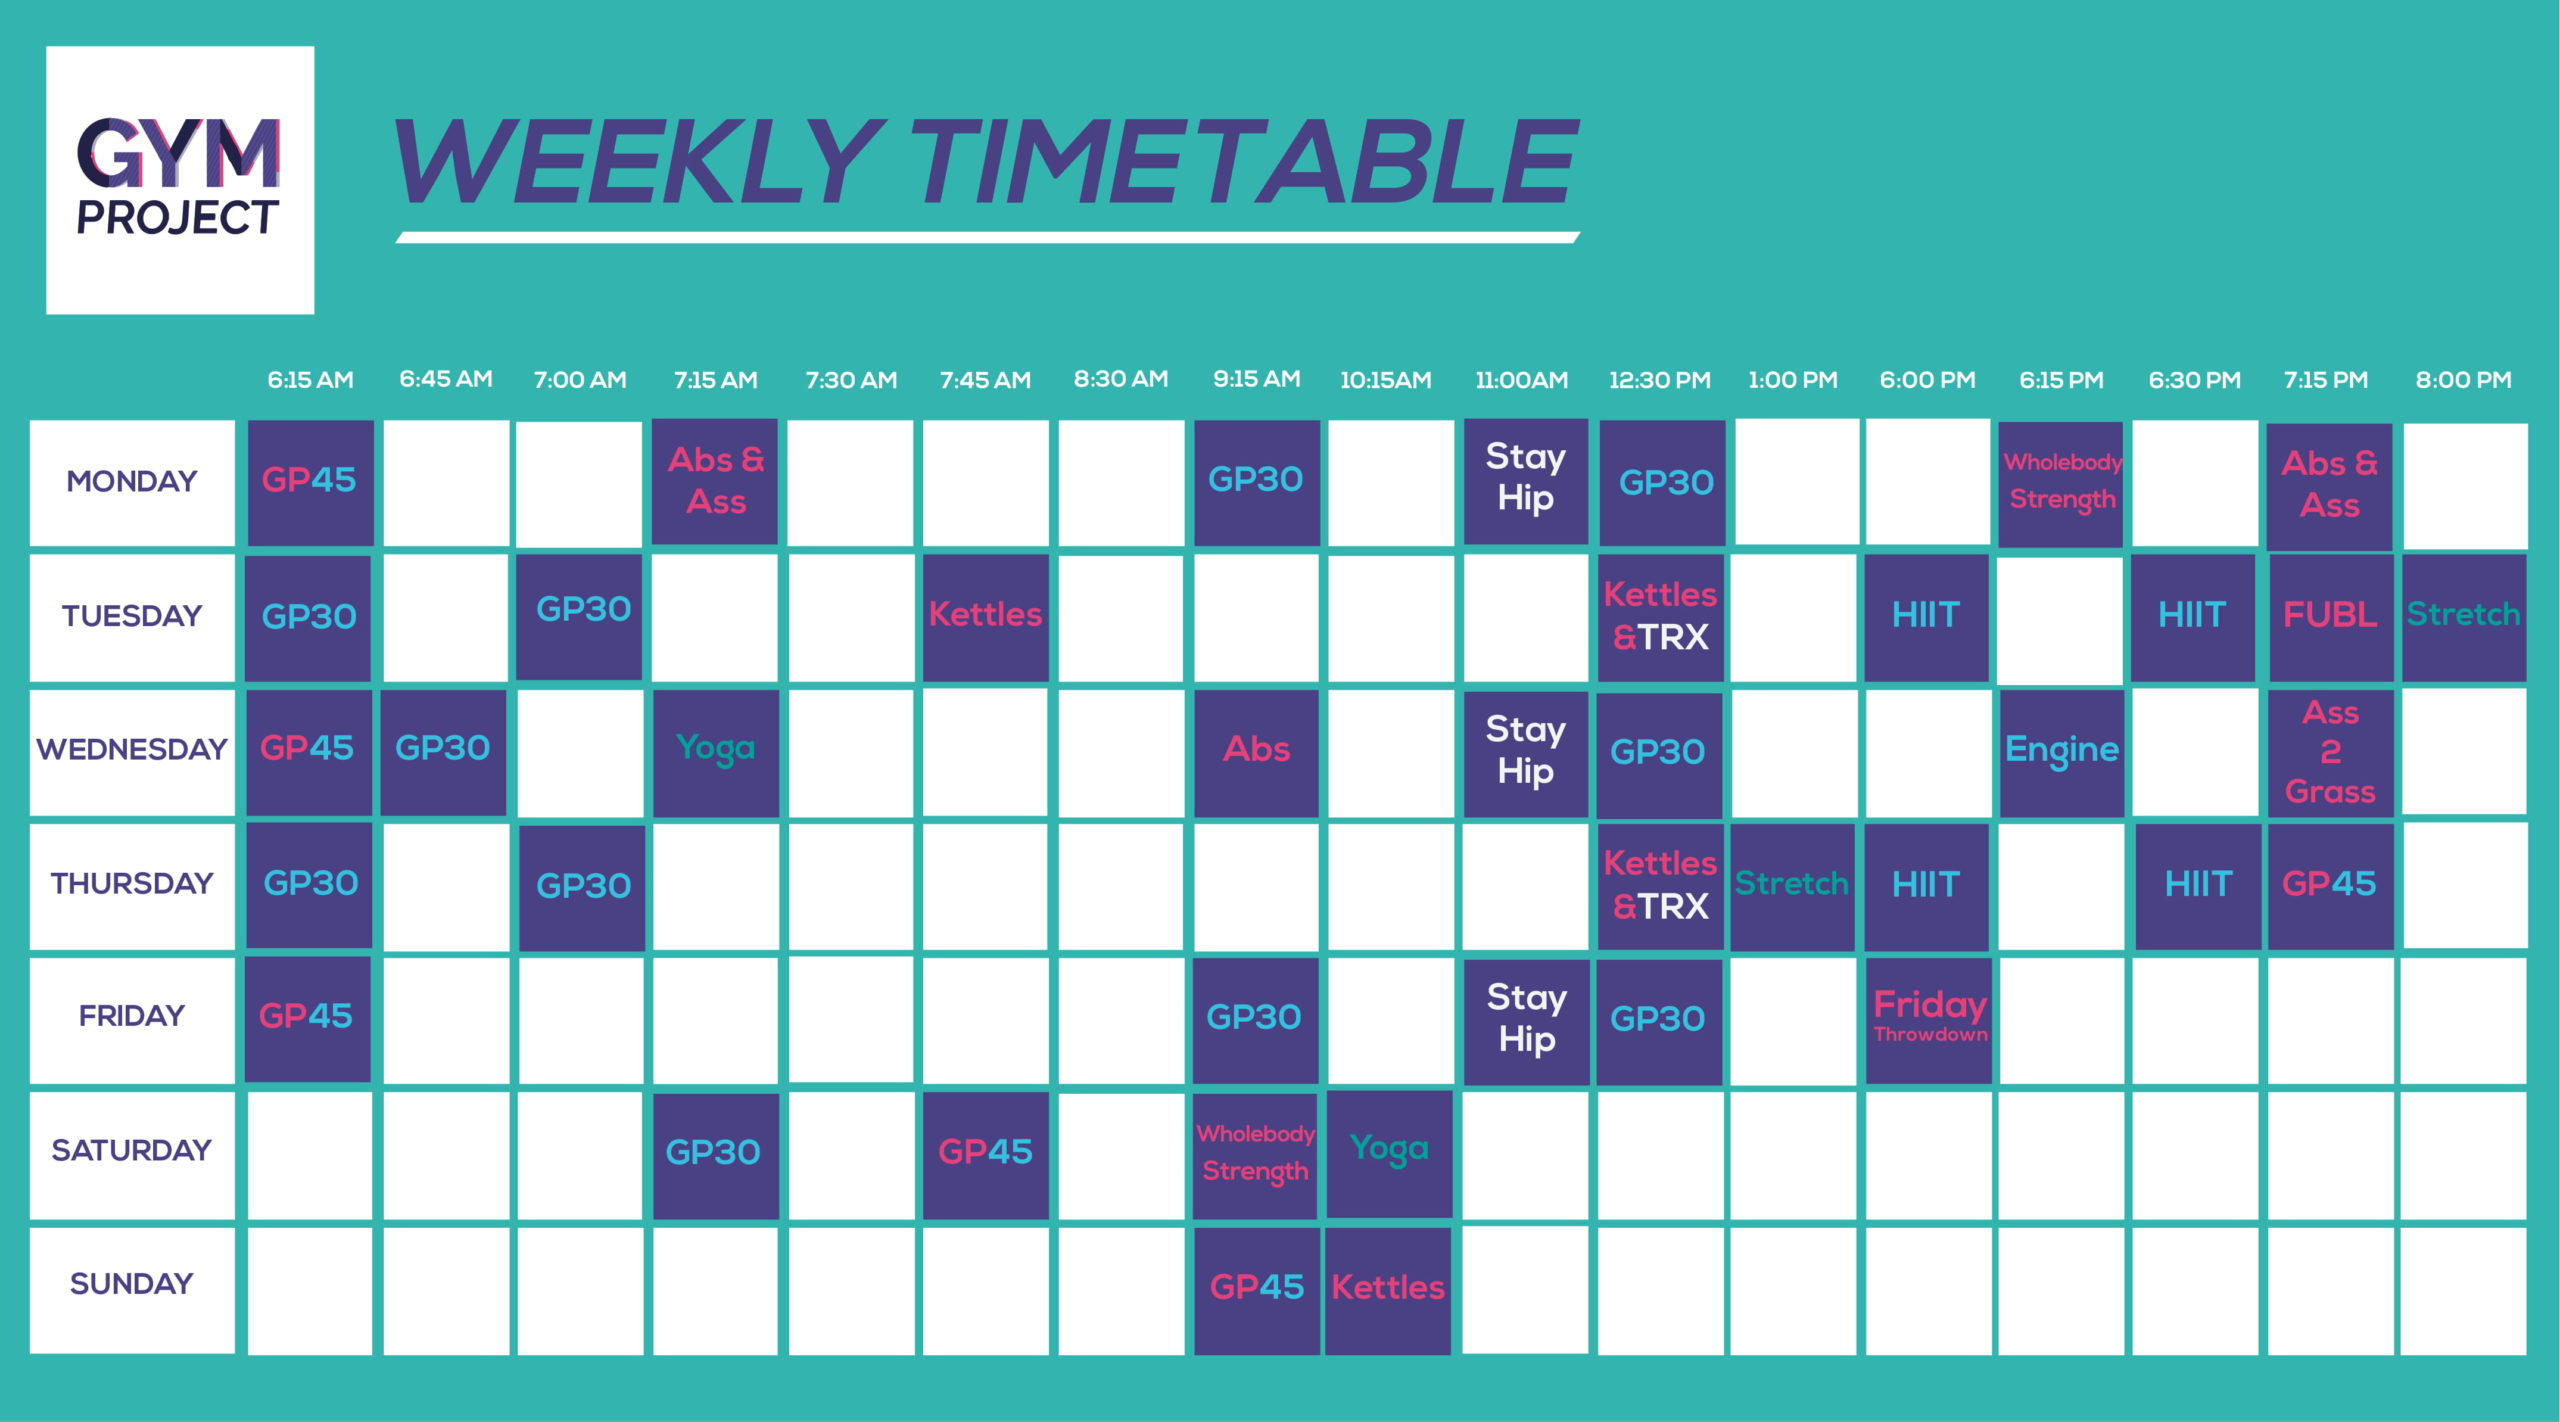 Gym Project Timetable - September 2020